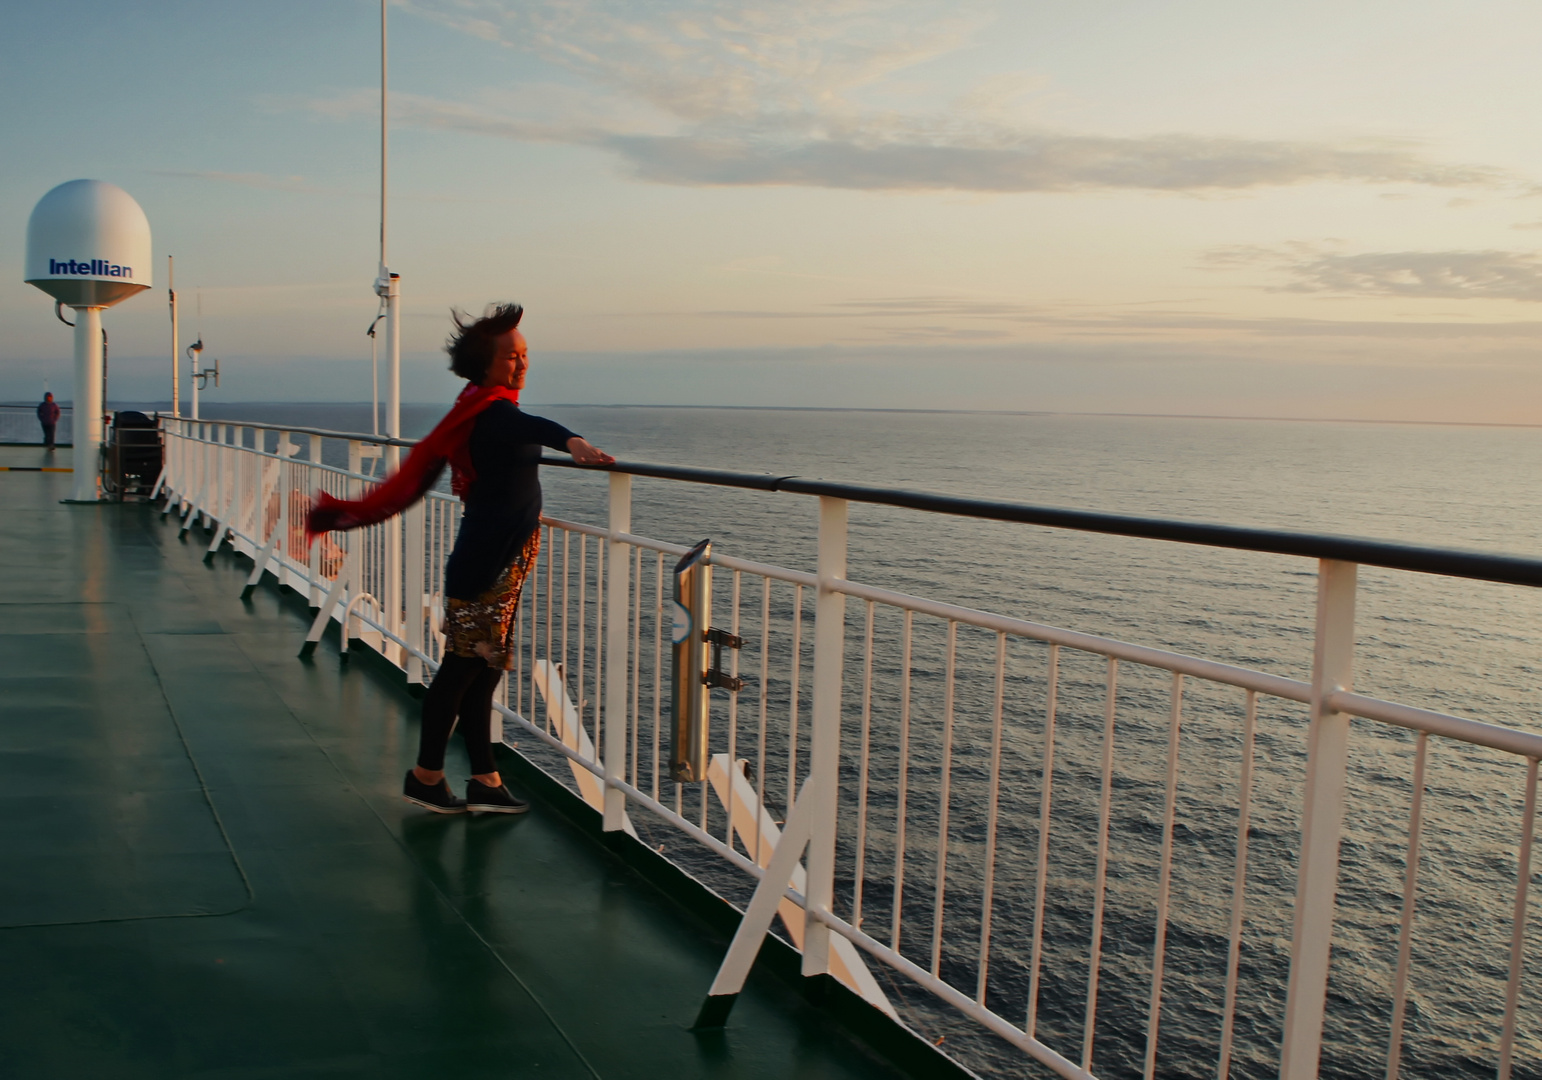 The red scarf over Baltic sea